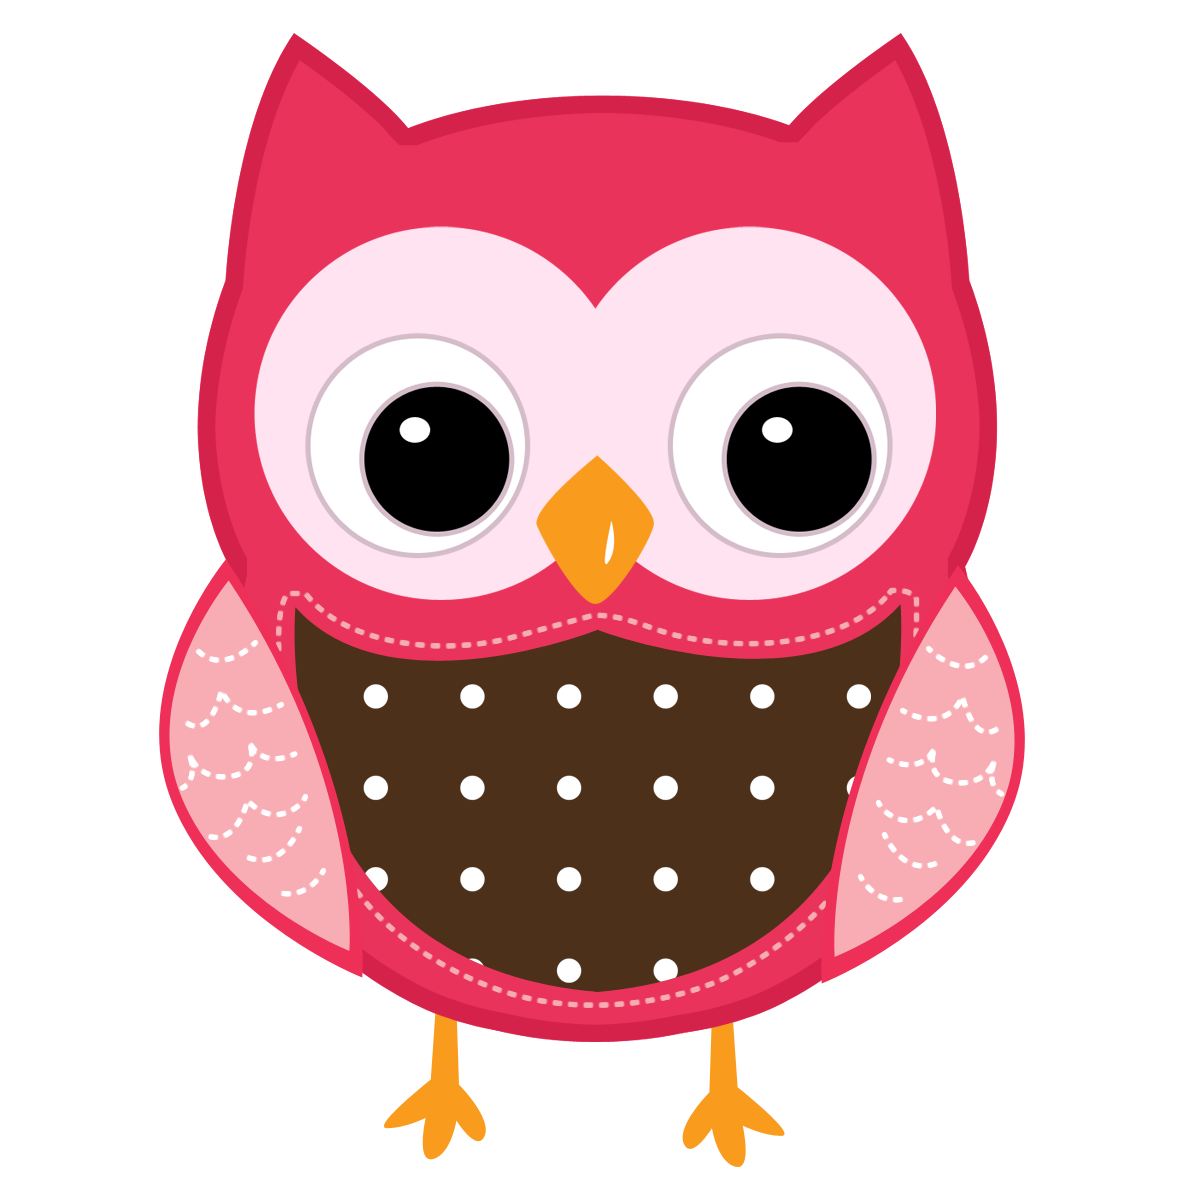 Cartoon Owl Face - ClipArt Best